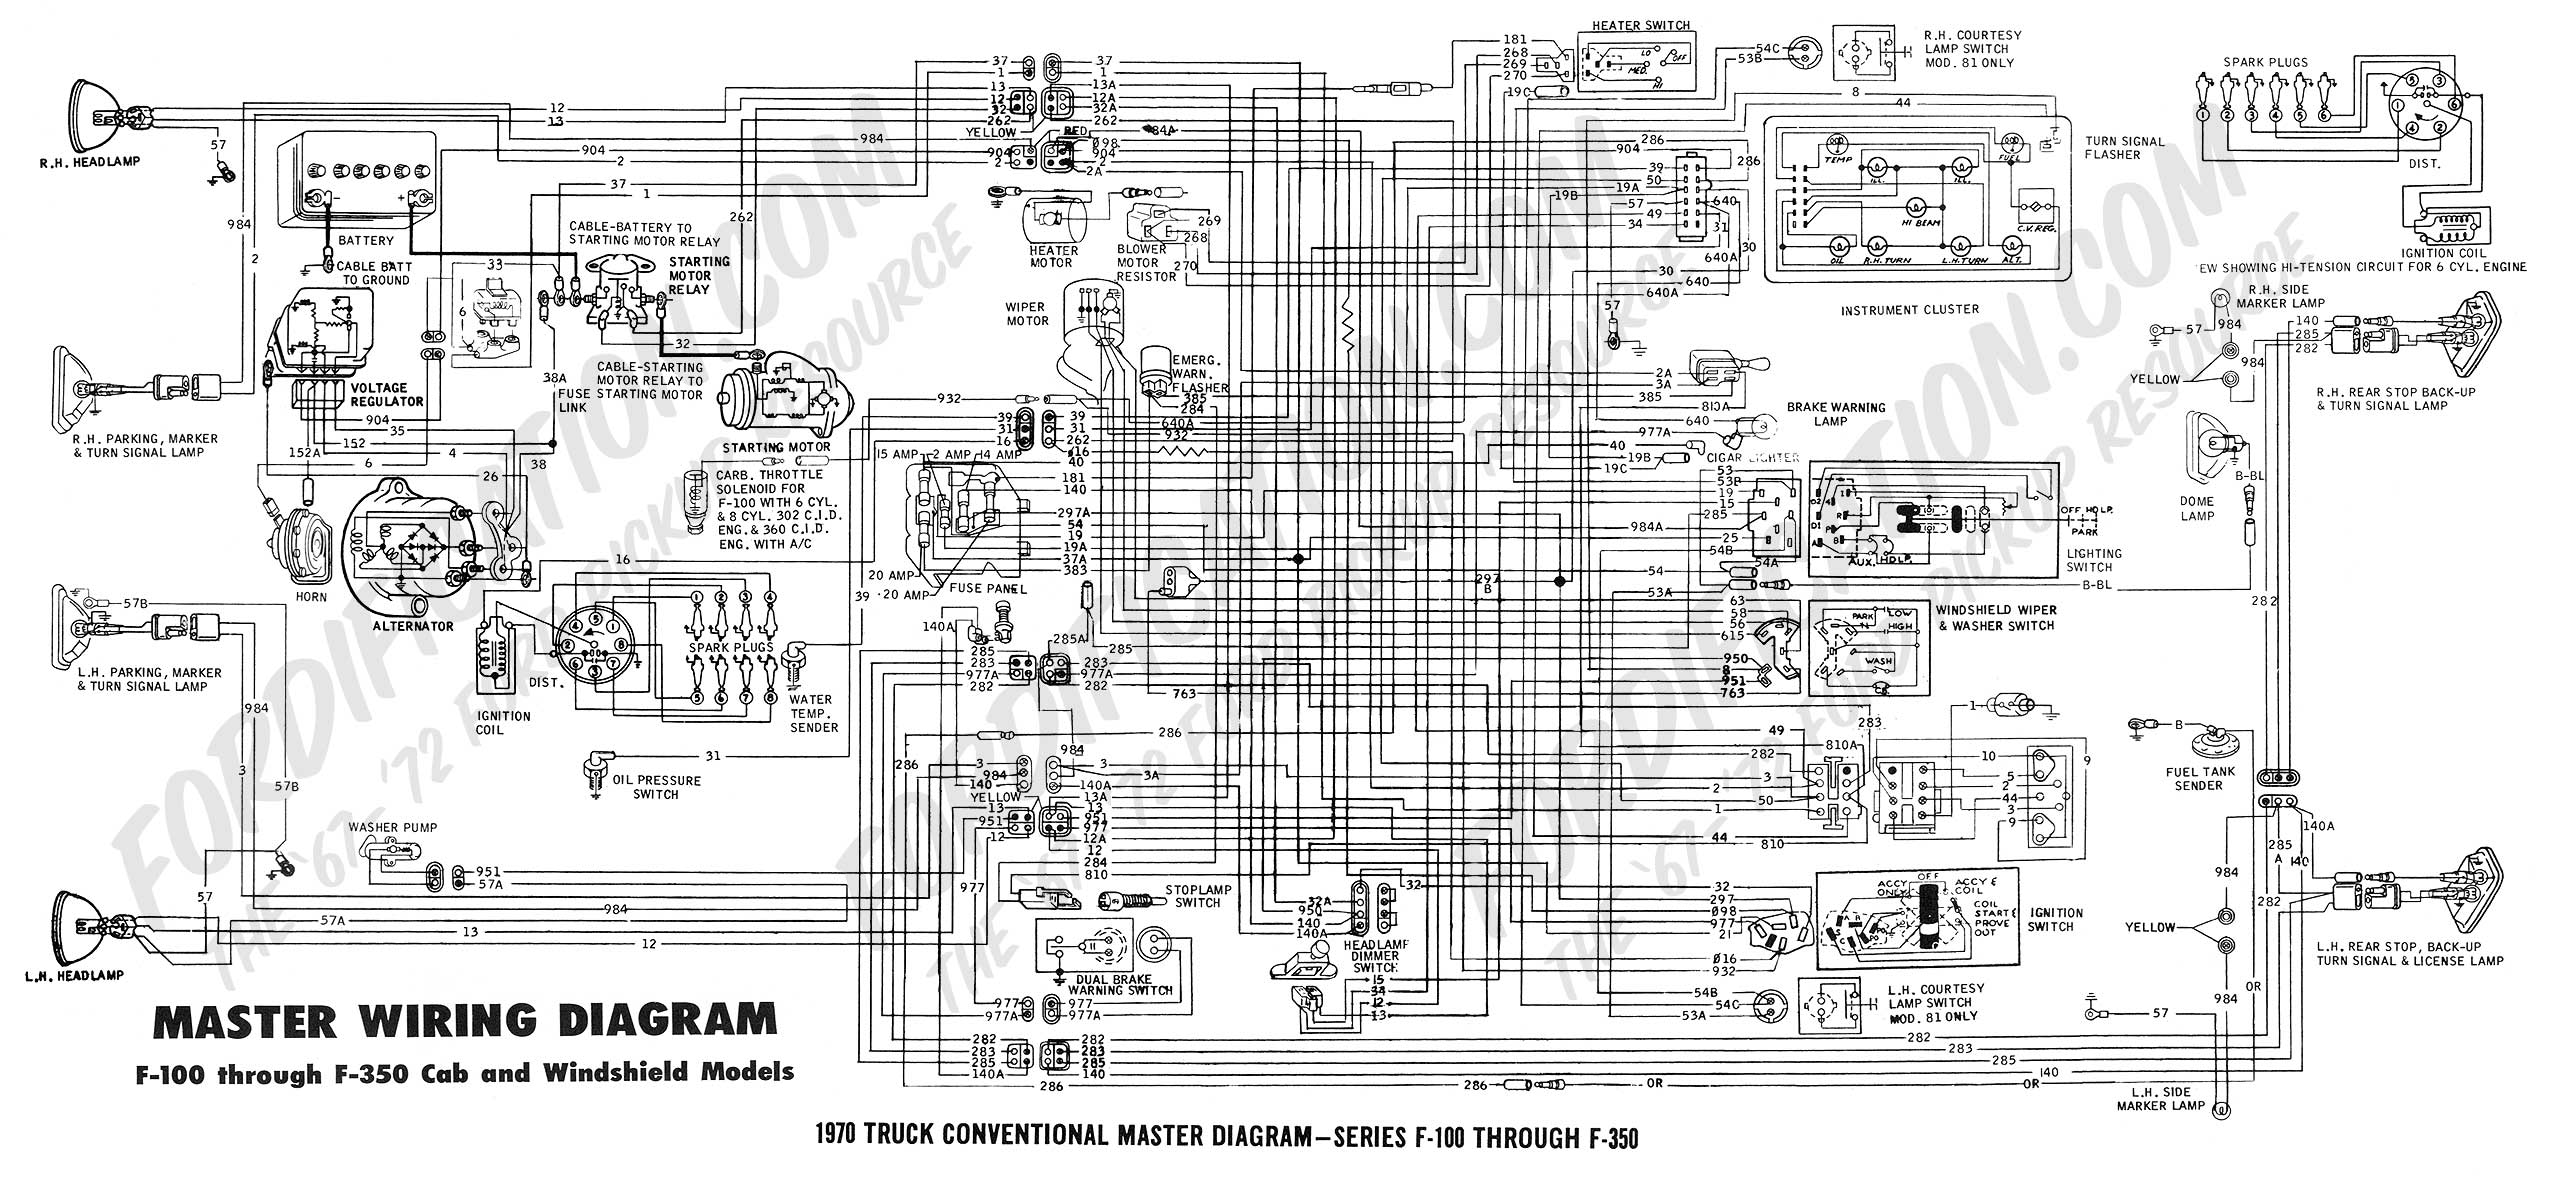 wiring diagram 70_master 2001 ford expedition wiring diagram efcaviation com 2001 ford f150 wiring schematic at pacquiaovsvargaslive.co